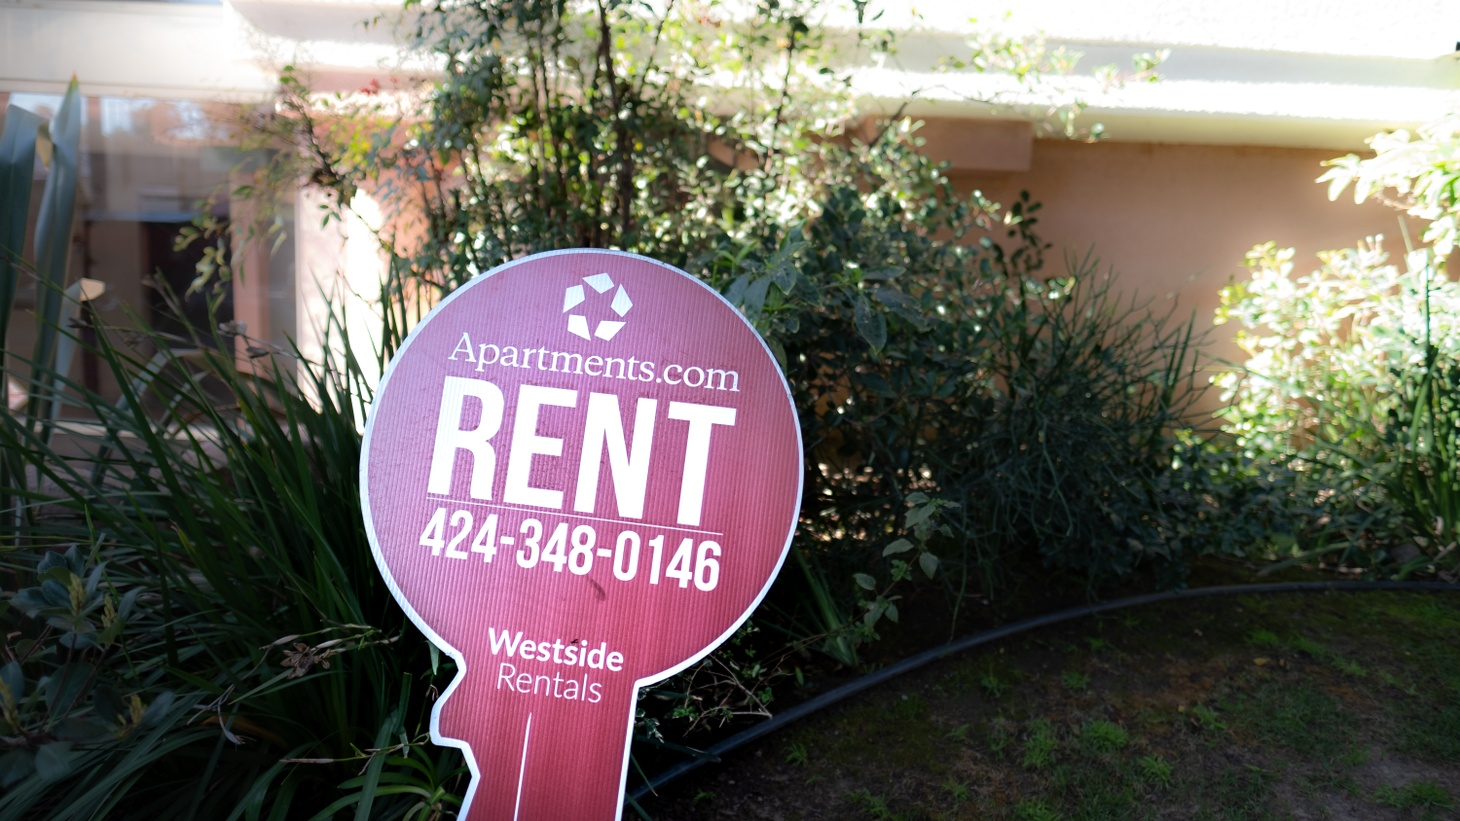 A rental sign is seen in front of an apartment building along Cardiff Ave. in the Palms neighborhood of Los Angeles. This week, LA leaders announced a new plan to eliminate all rental debt accumulated by low-income households due to COVID-19.